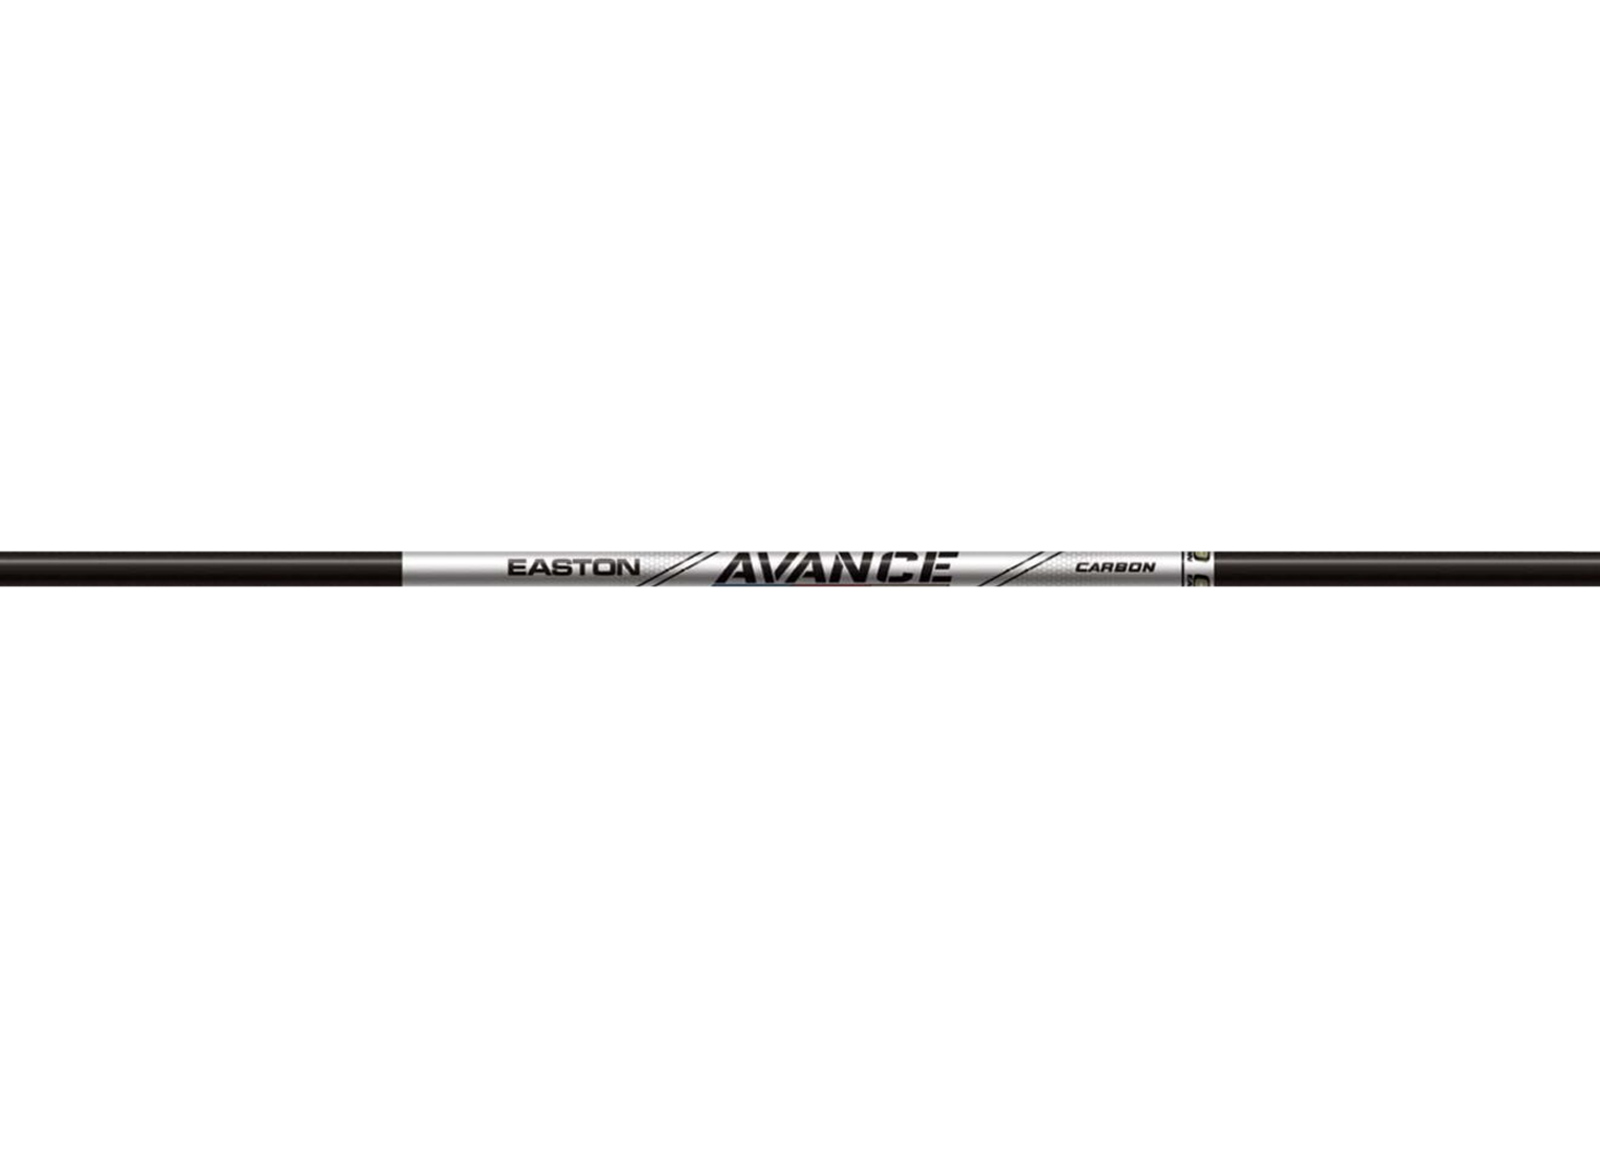 EASTON ASTA AVANCE